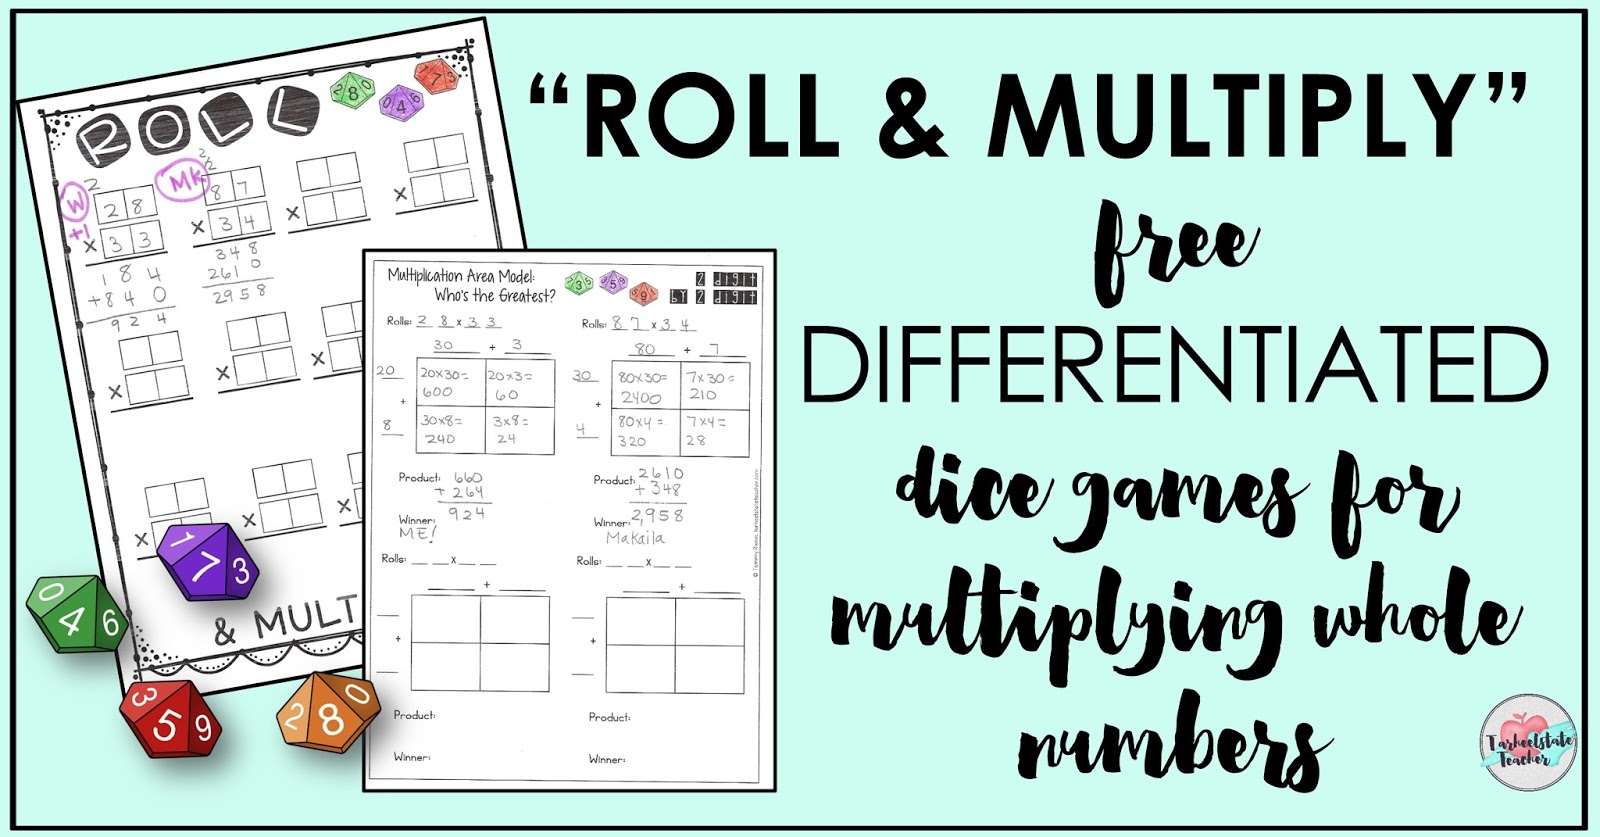 Reflections And Resources From Tarheelstate Teacher Roll And Multiply Free Dice Game For